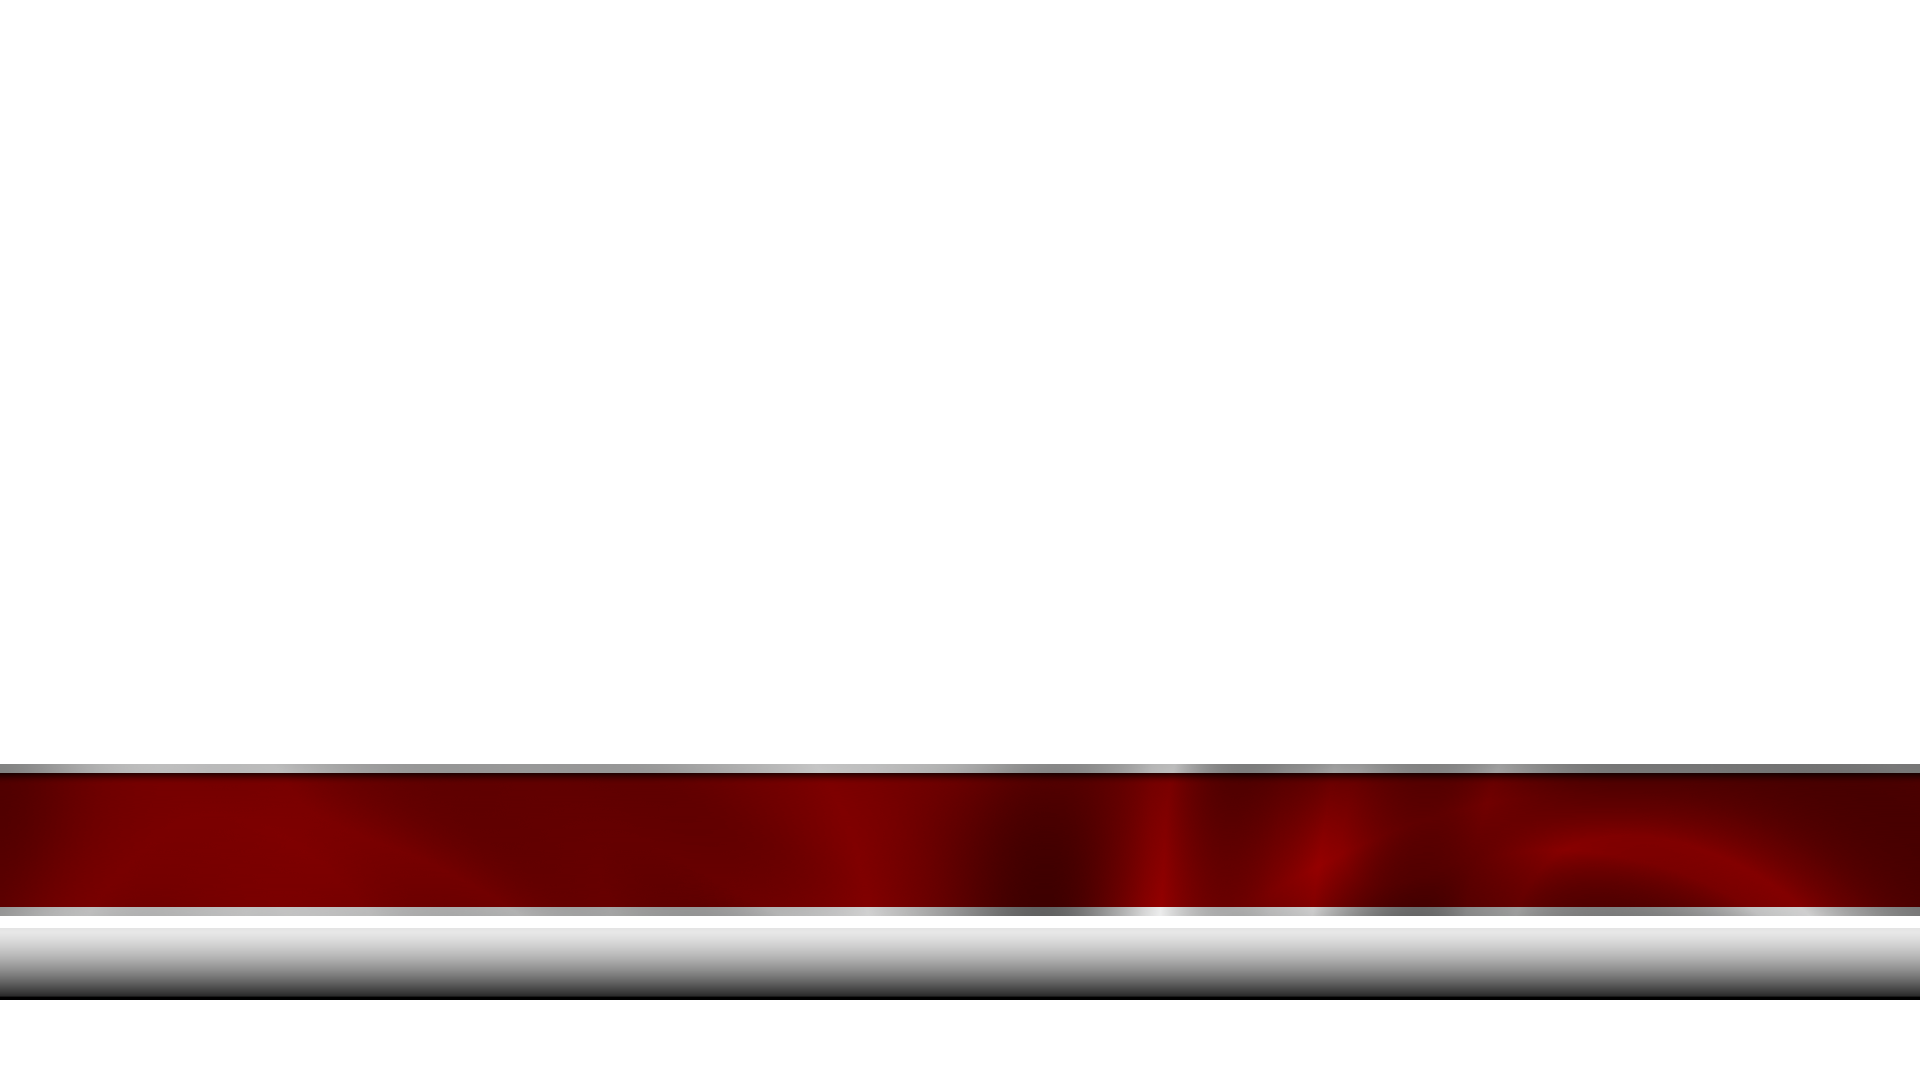 Lower third png download. News red unlimited free